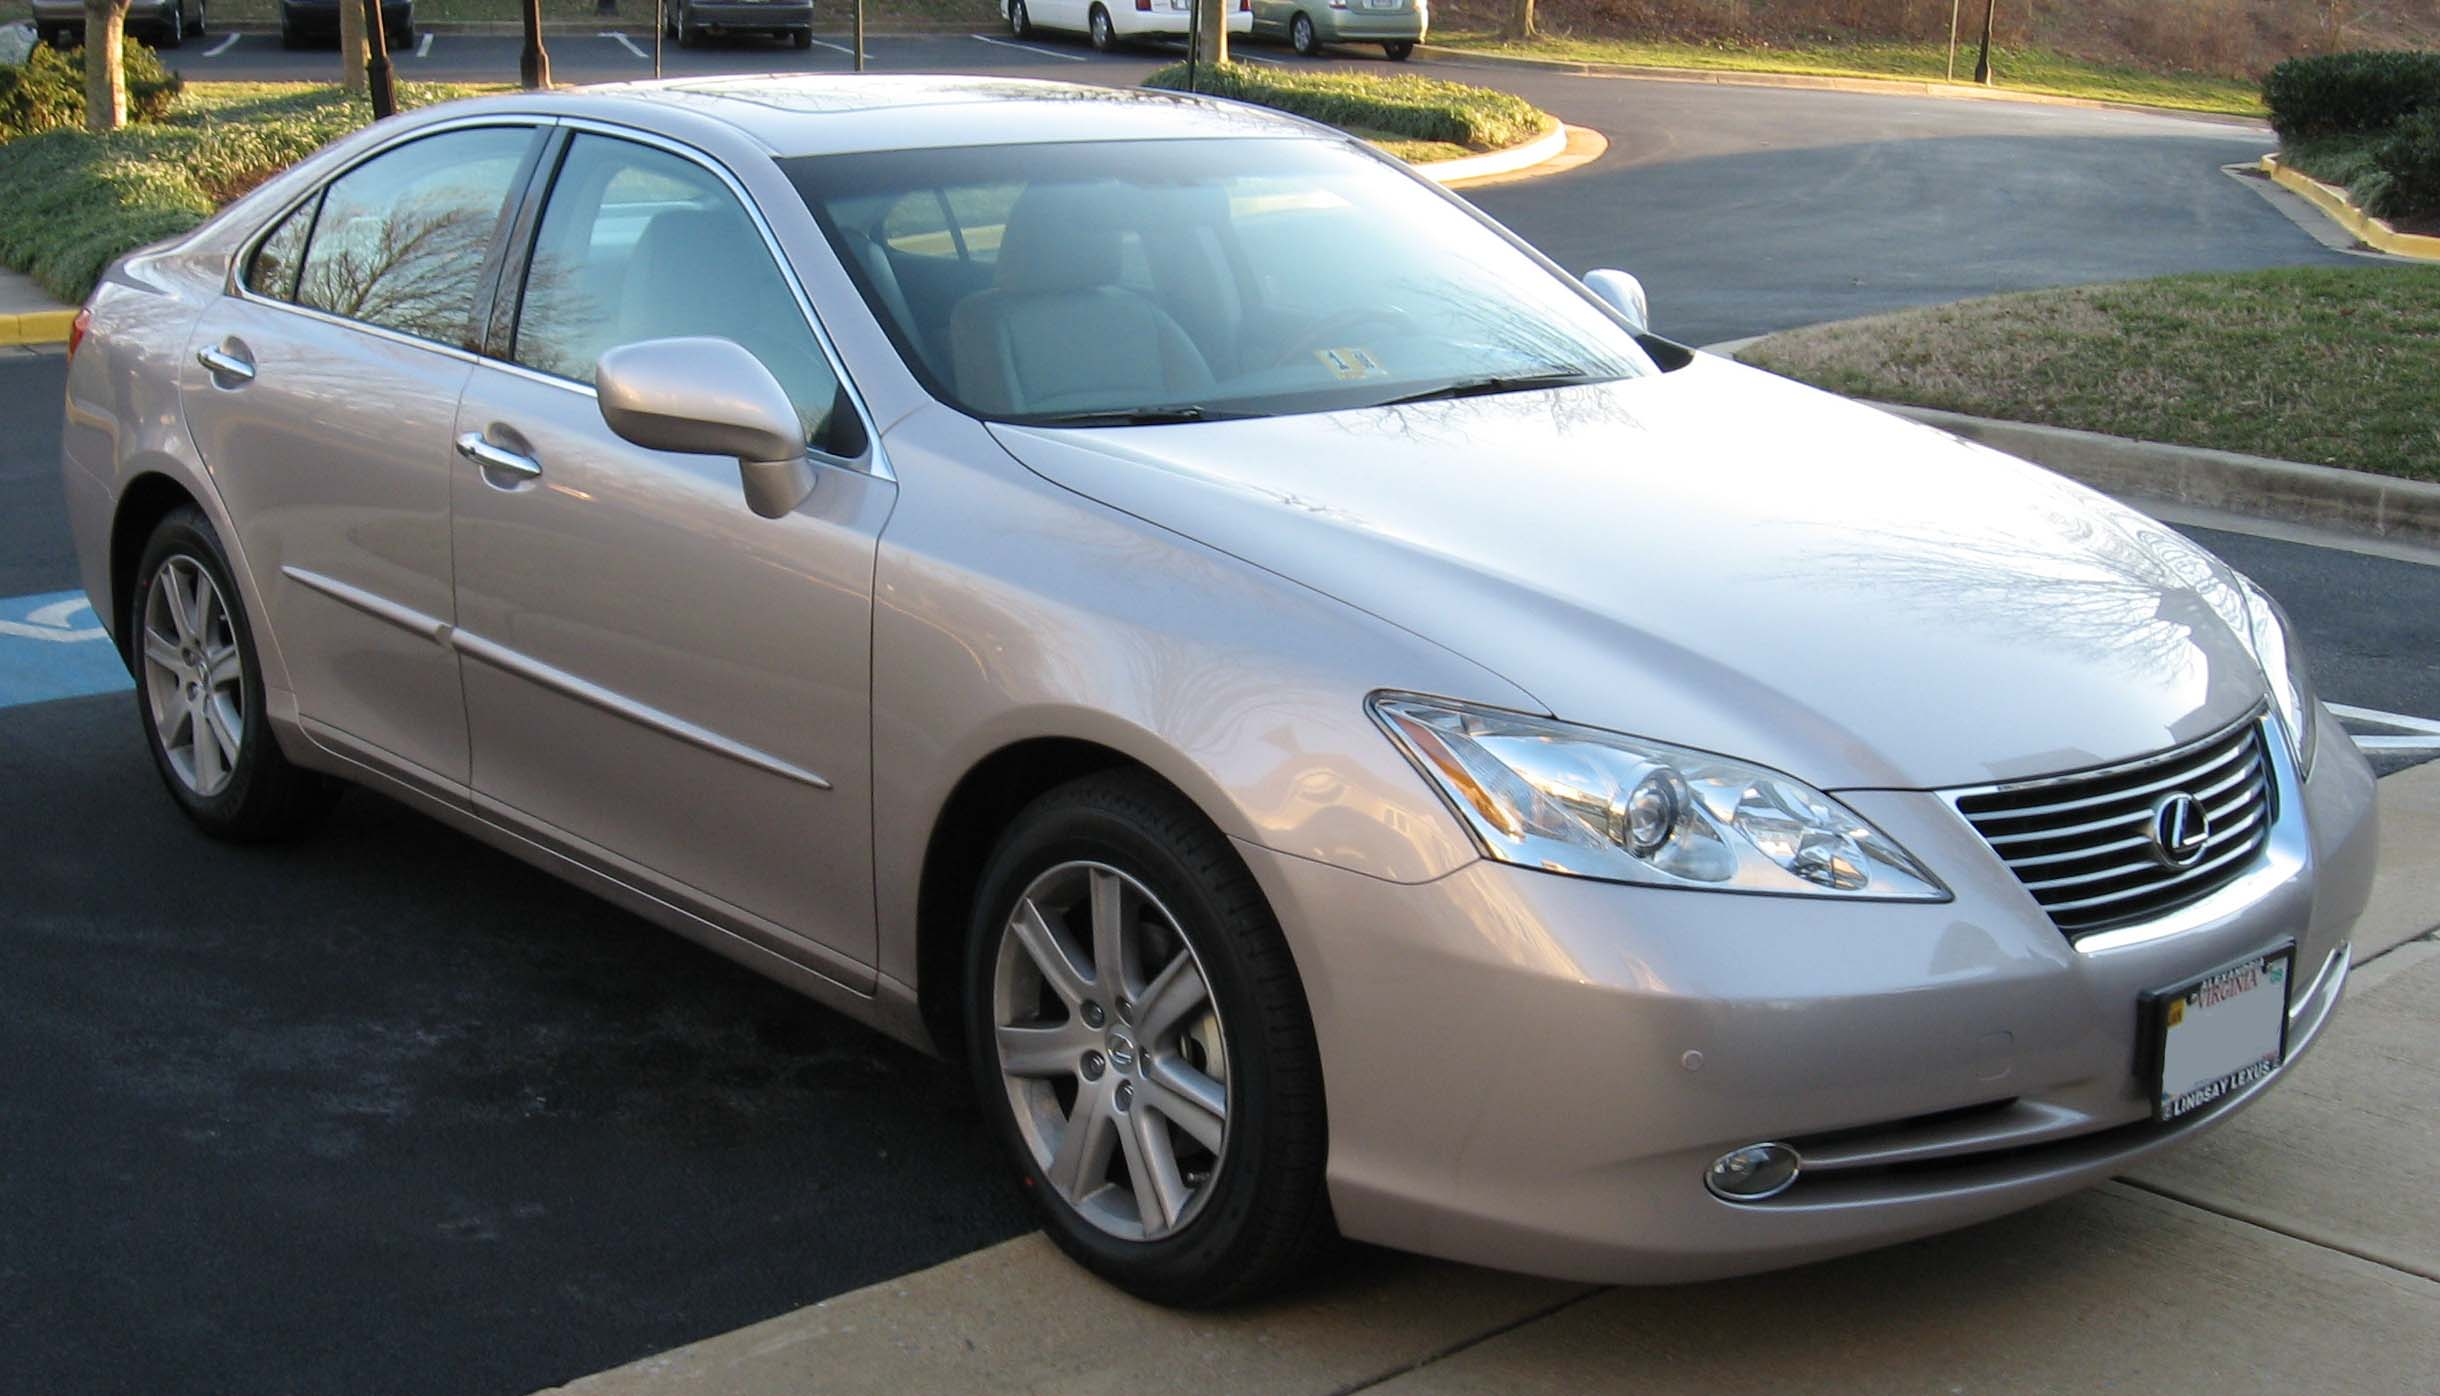 2007 Lexus IS 350 Information and photos MOMENTcar